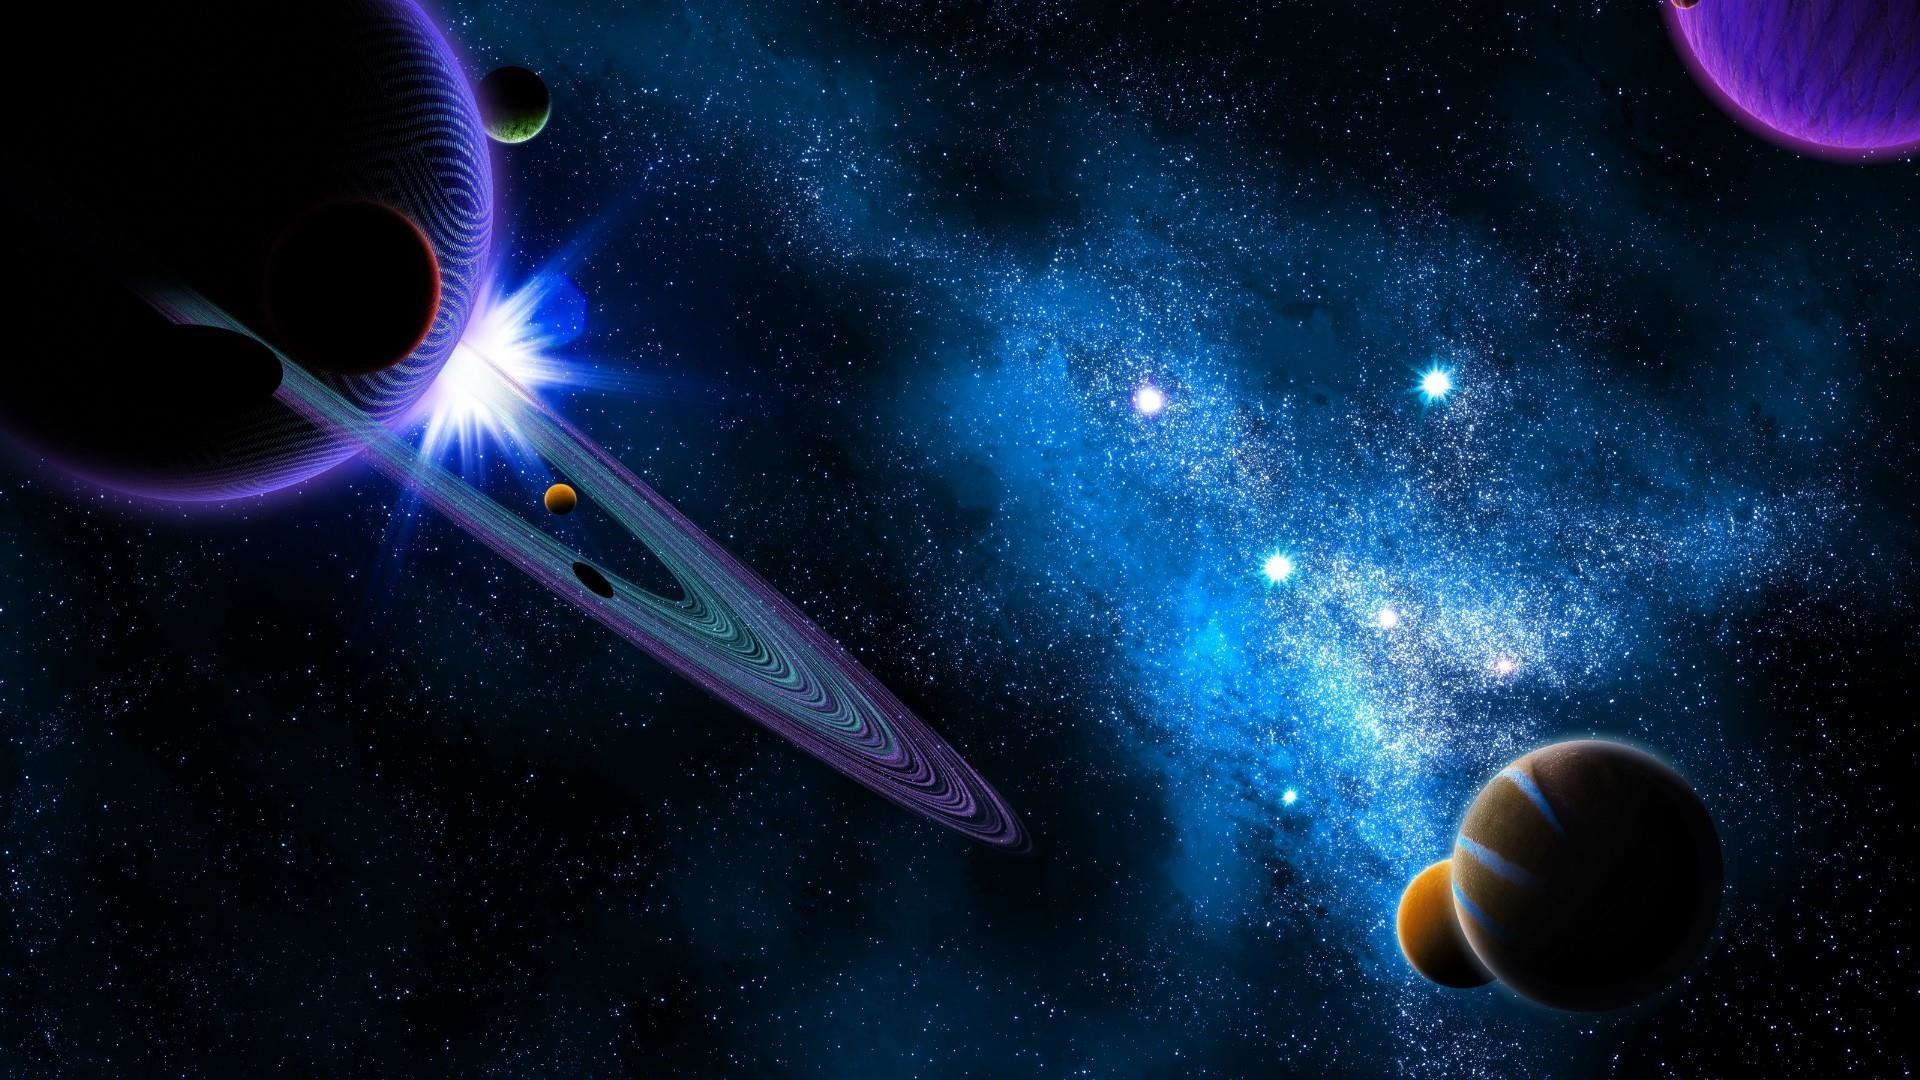 Res: 1920x1080, Planets In The Universe Wallpaper | Wallpaper Studio 10 | Tens of thousands  HD and UltraHD wallpapers for Android, Windows and Xbox